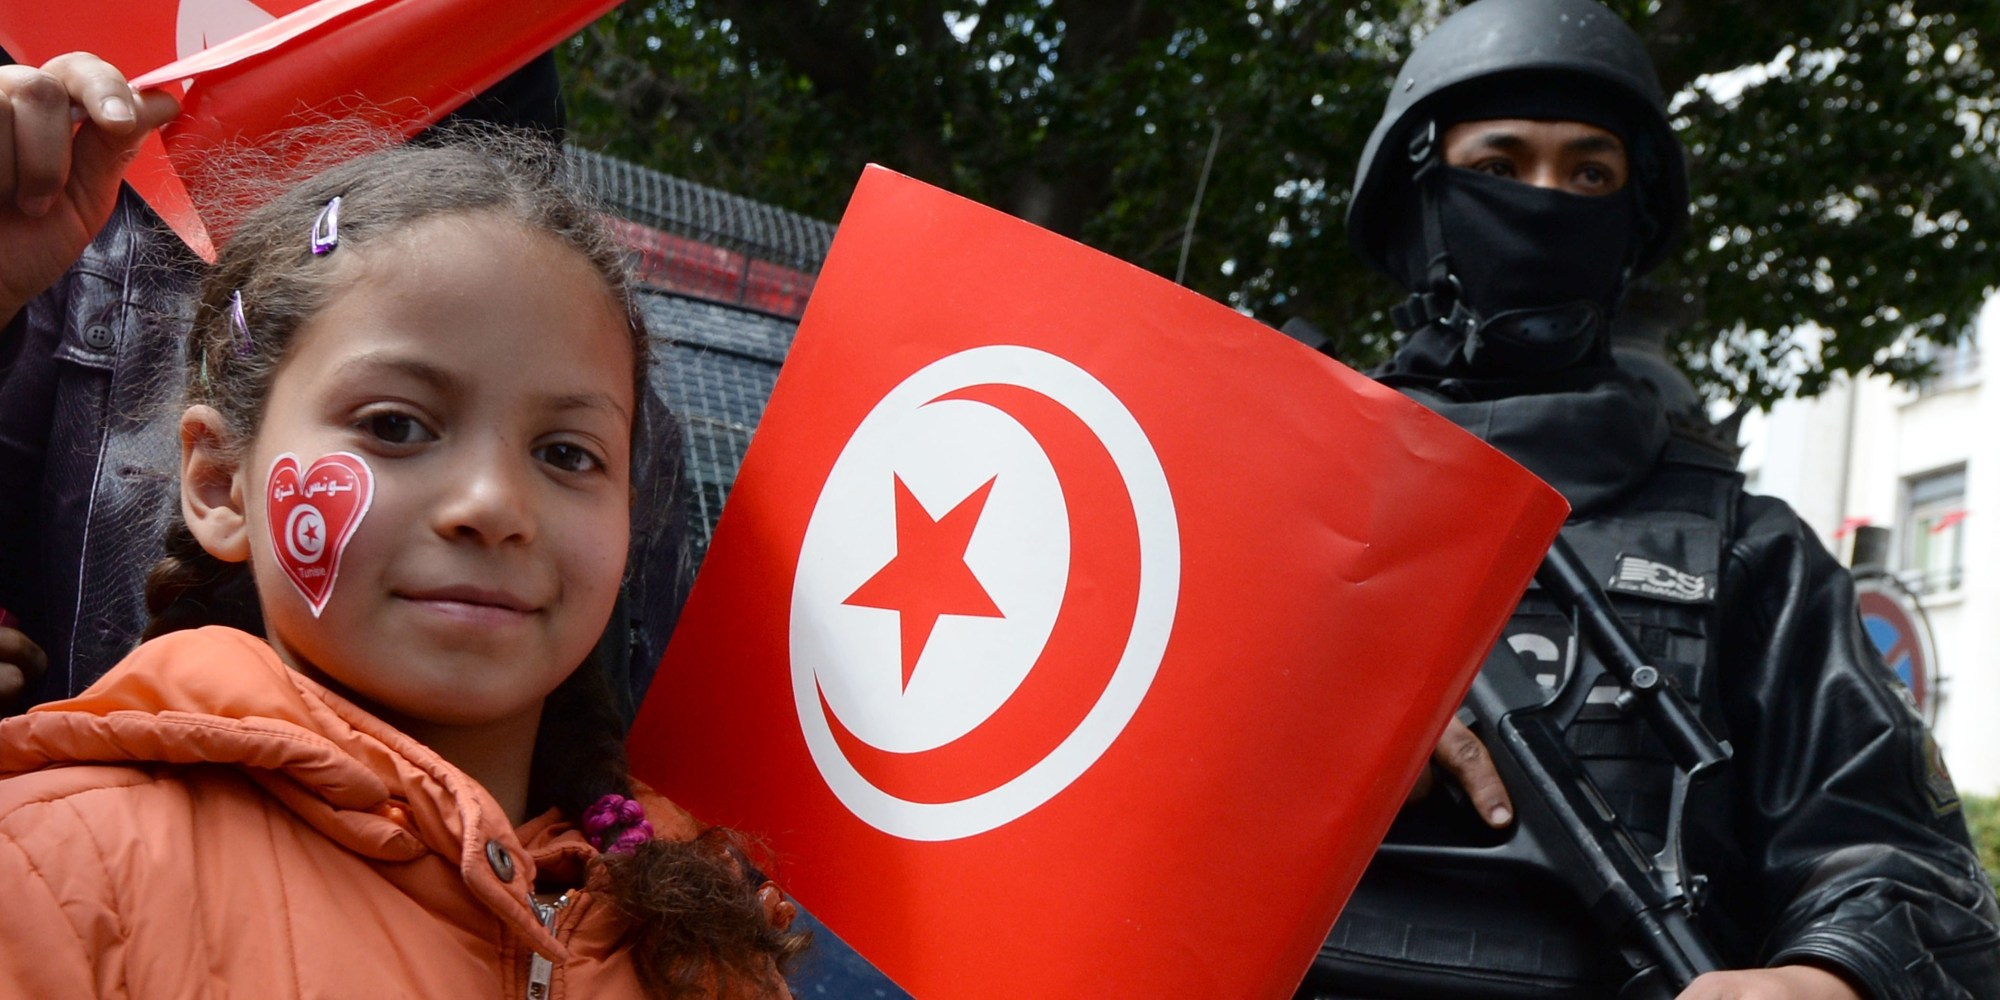 The Tunisian Political Landscape: Between Consensus and Conflict